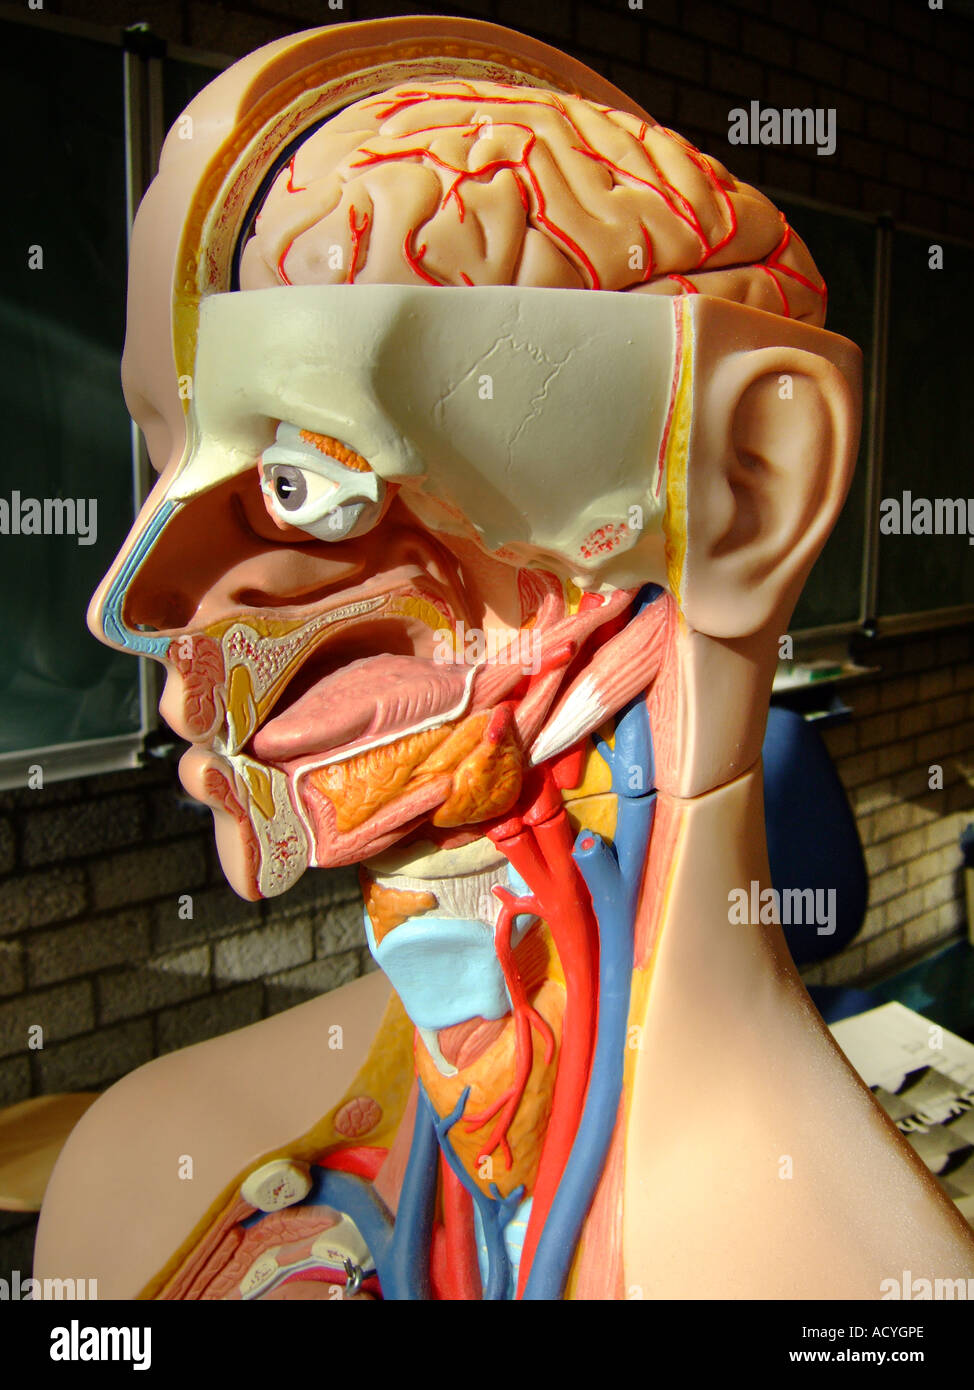 Vocal Cords And Larynx Imágenes De Stock & Vocal Cords And Larynx ...